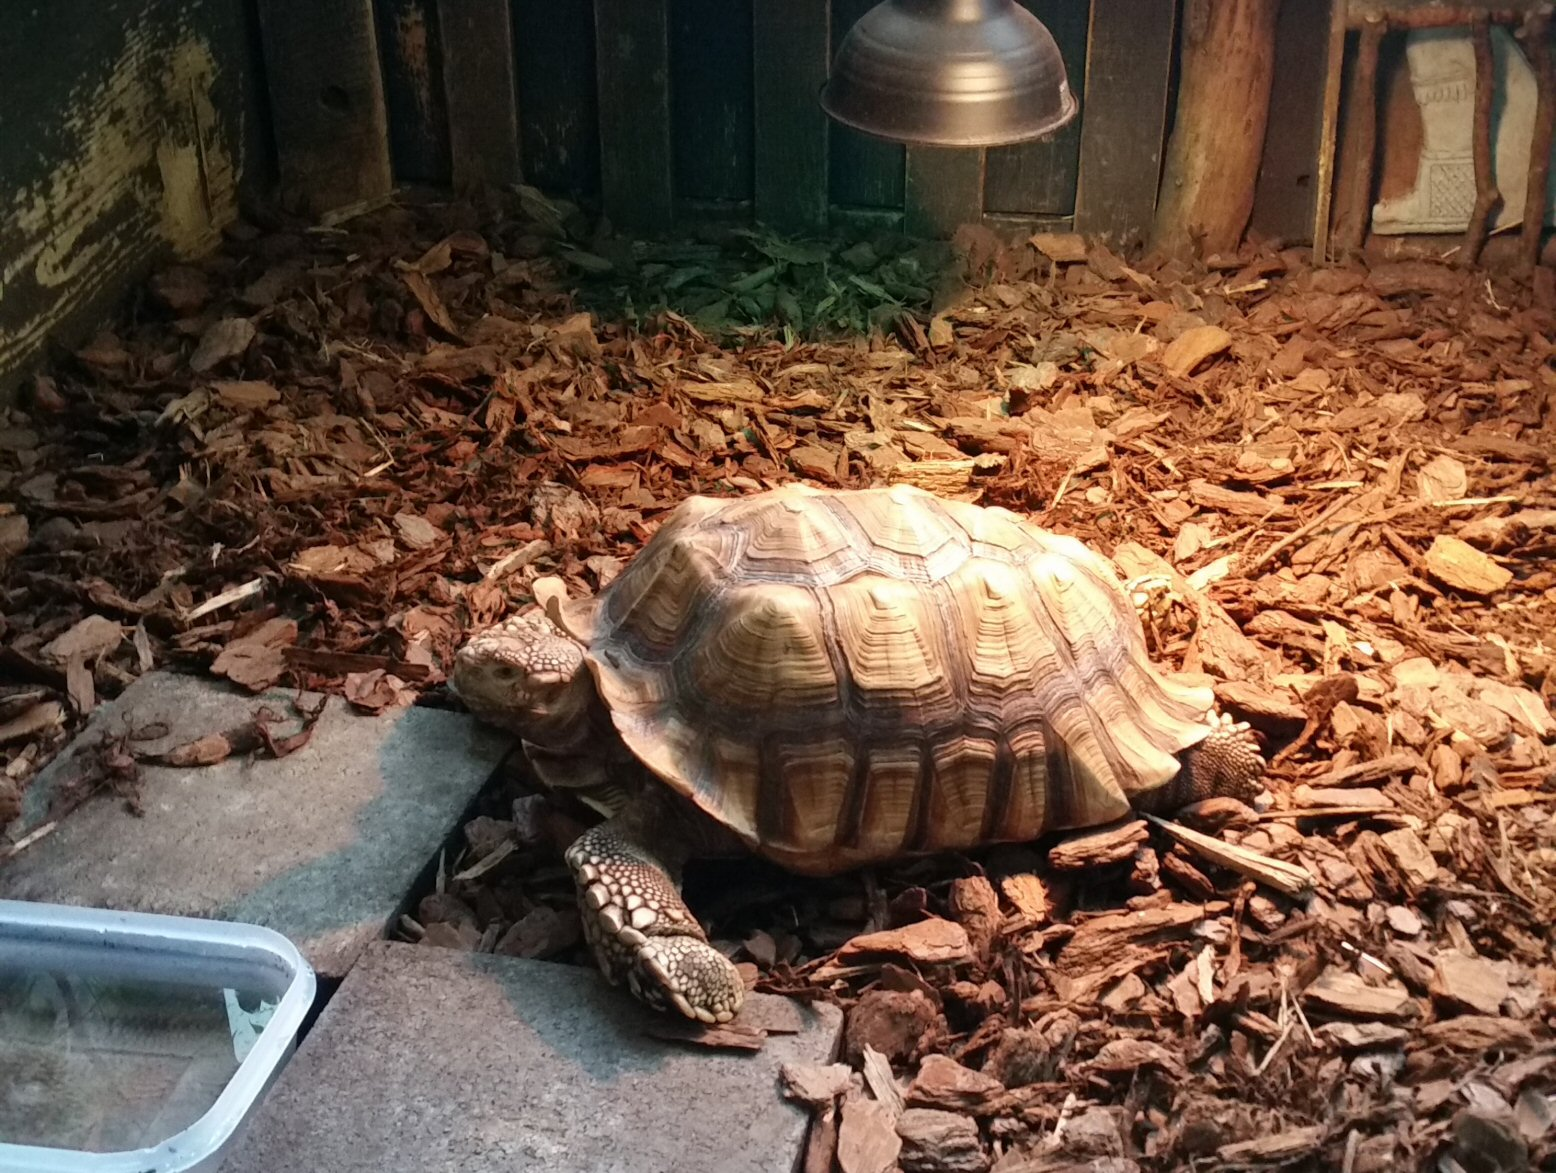 Another Large Tortoise Warming Up Under a Lamp